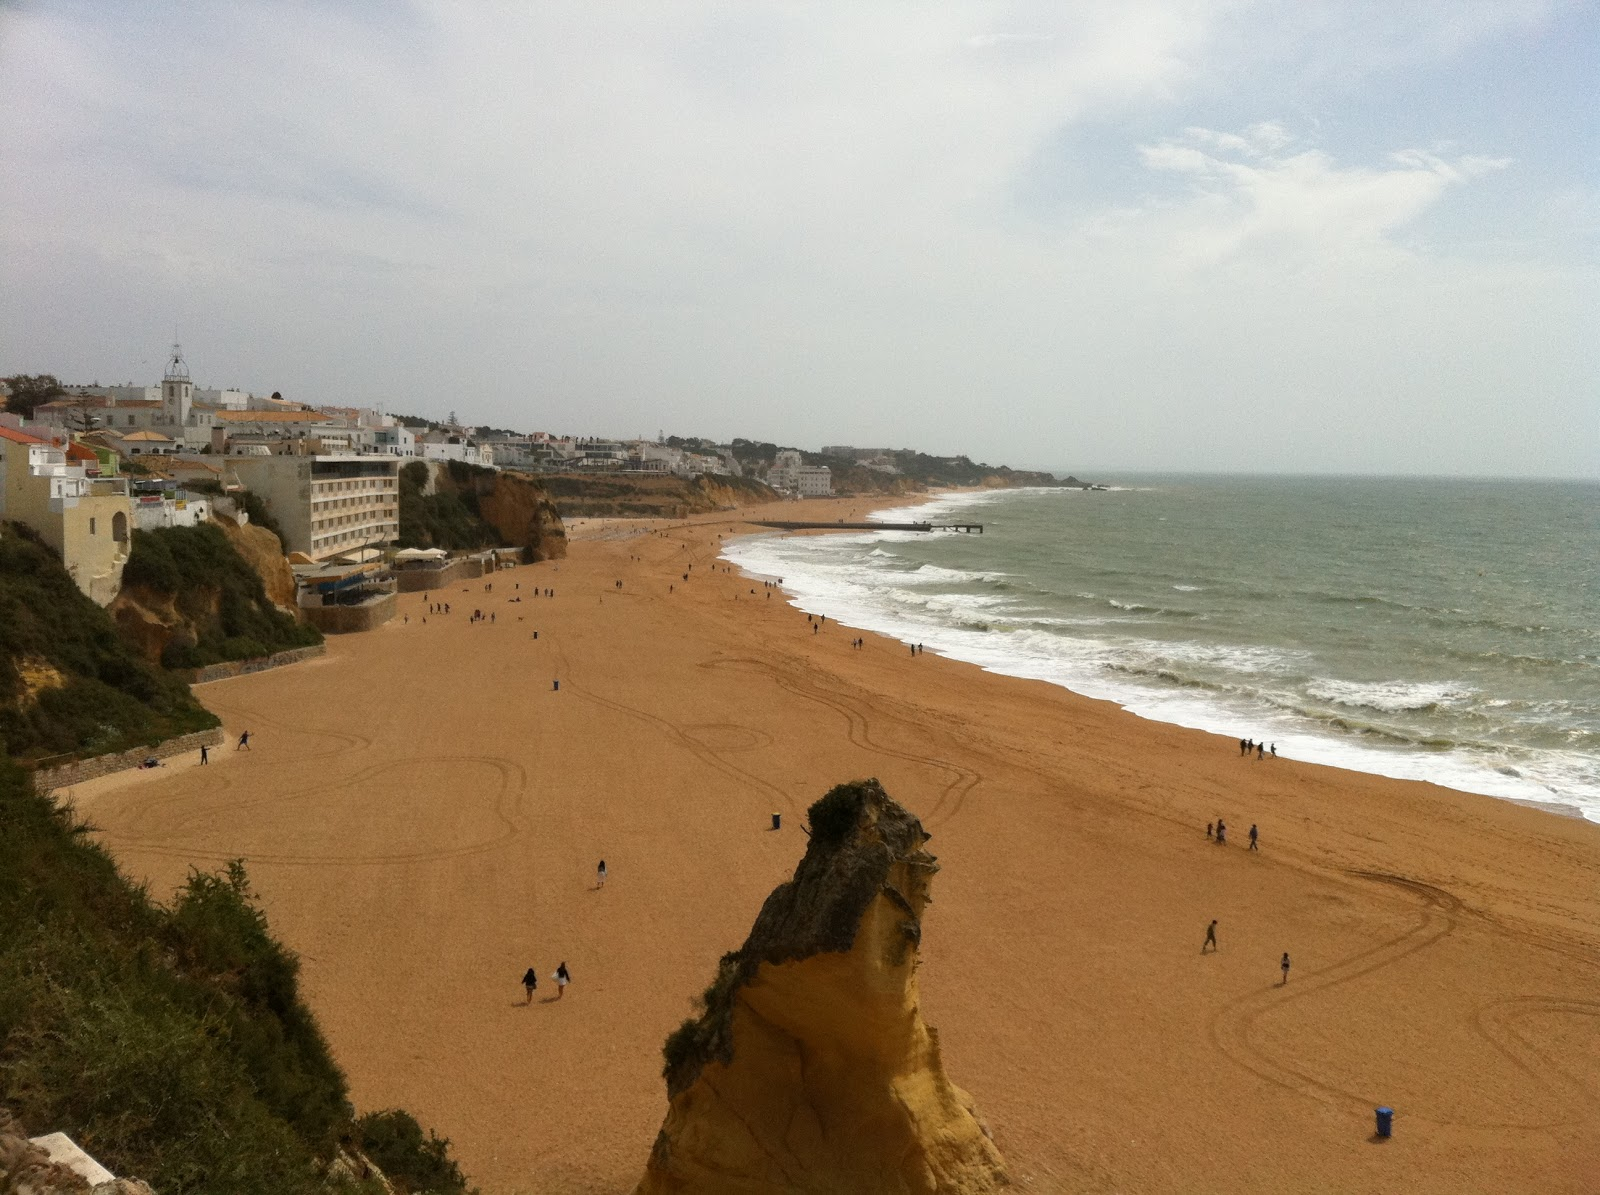 albufeira singles So no wonder the auramar beach resort is such a popular choice for holidaymakers to the algarve here is a hotel that gives you those unparalleled views, and the opportunity to make the most of the wonderful beach for which the algarve is famous, but also puts you within easy reach of albufeira and all its amenities.